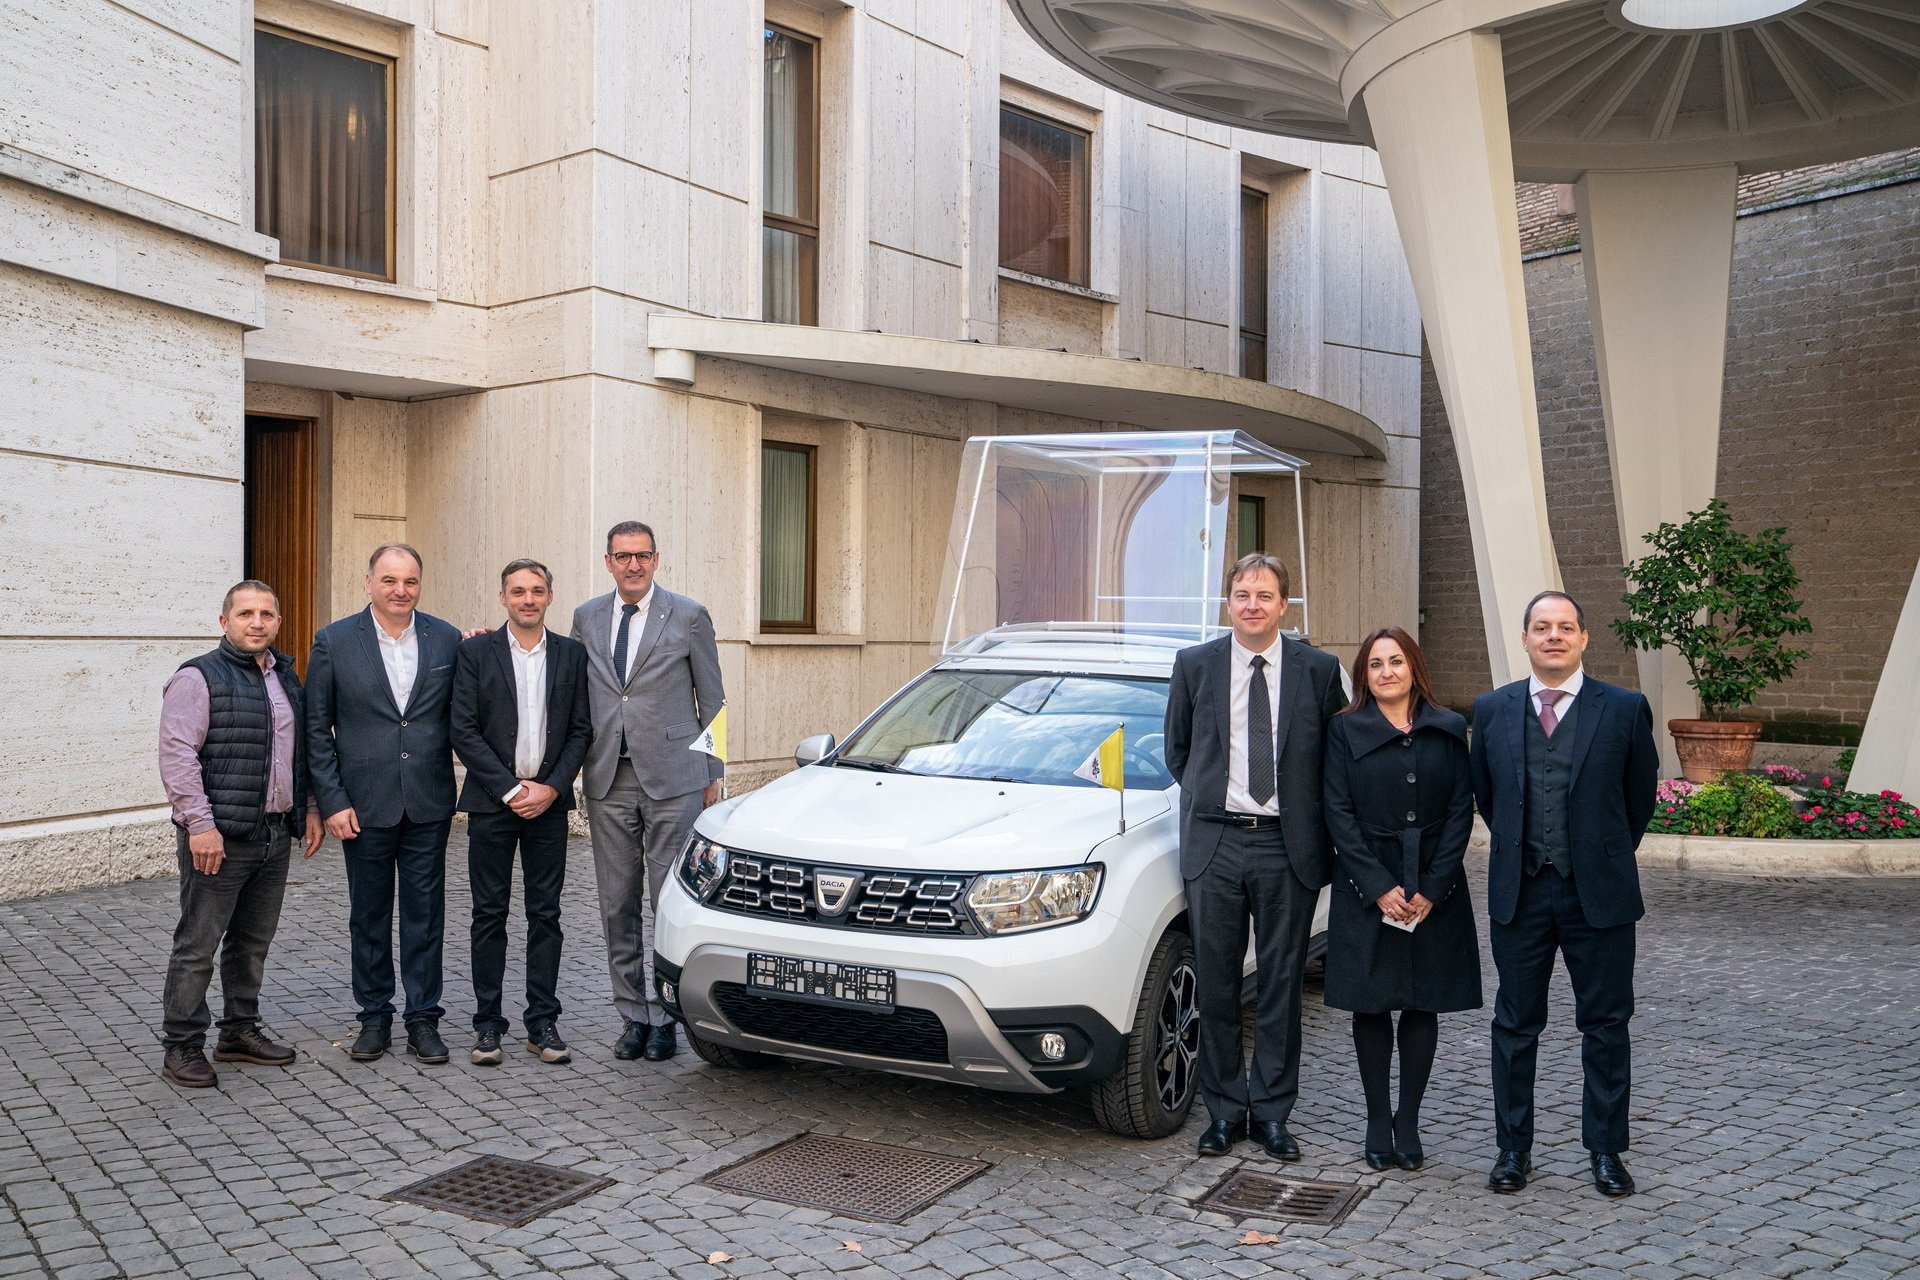 dacia-duster-for-pope-francis-1